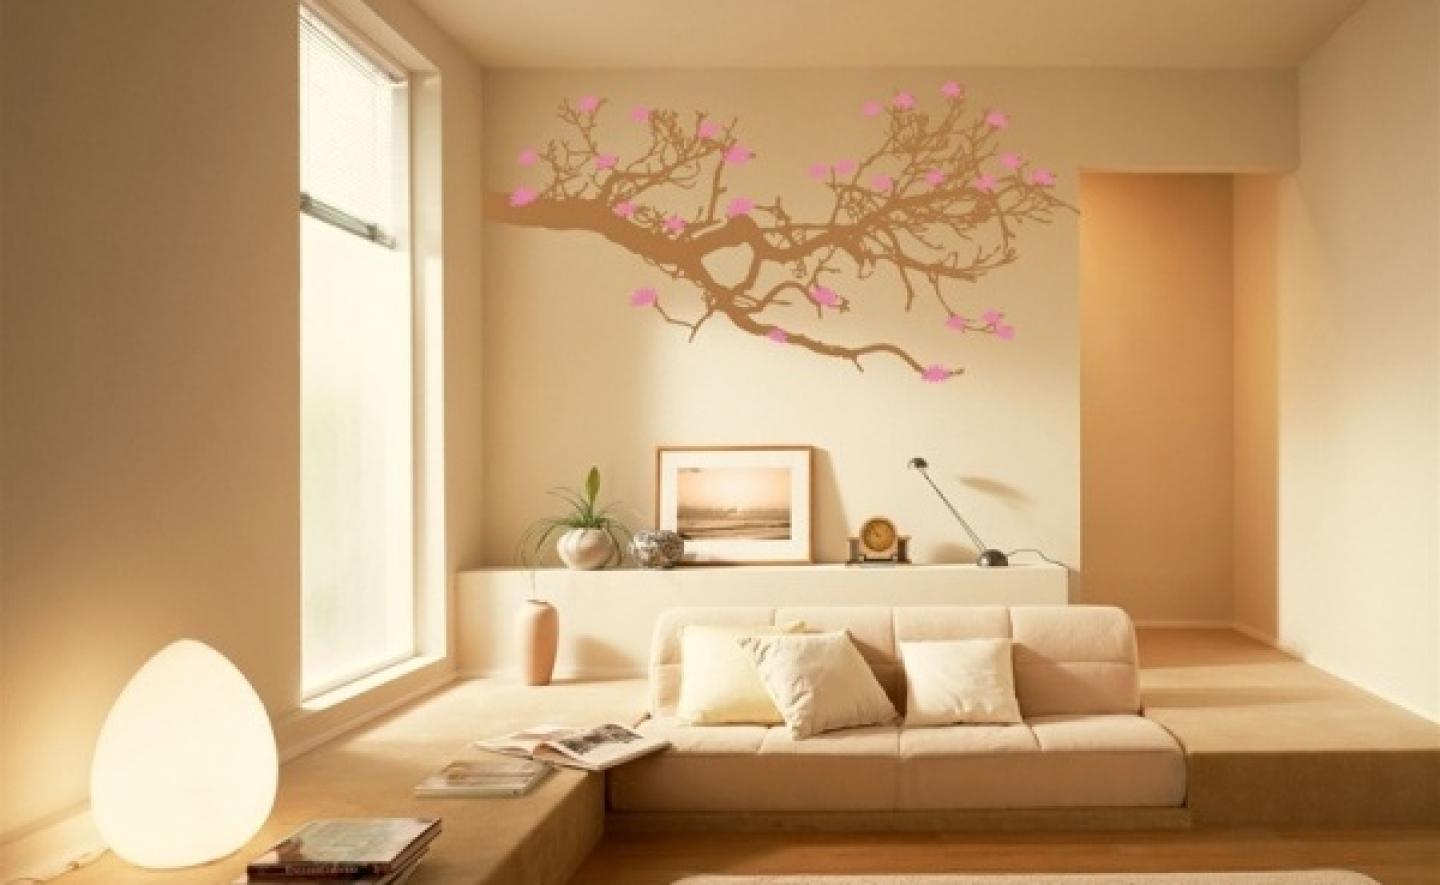 Home Interior Paint Design Ideas For Android Apk Download